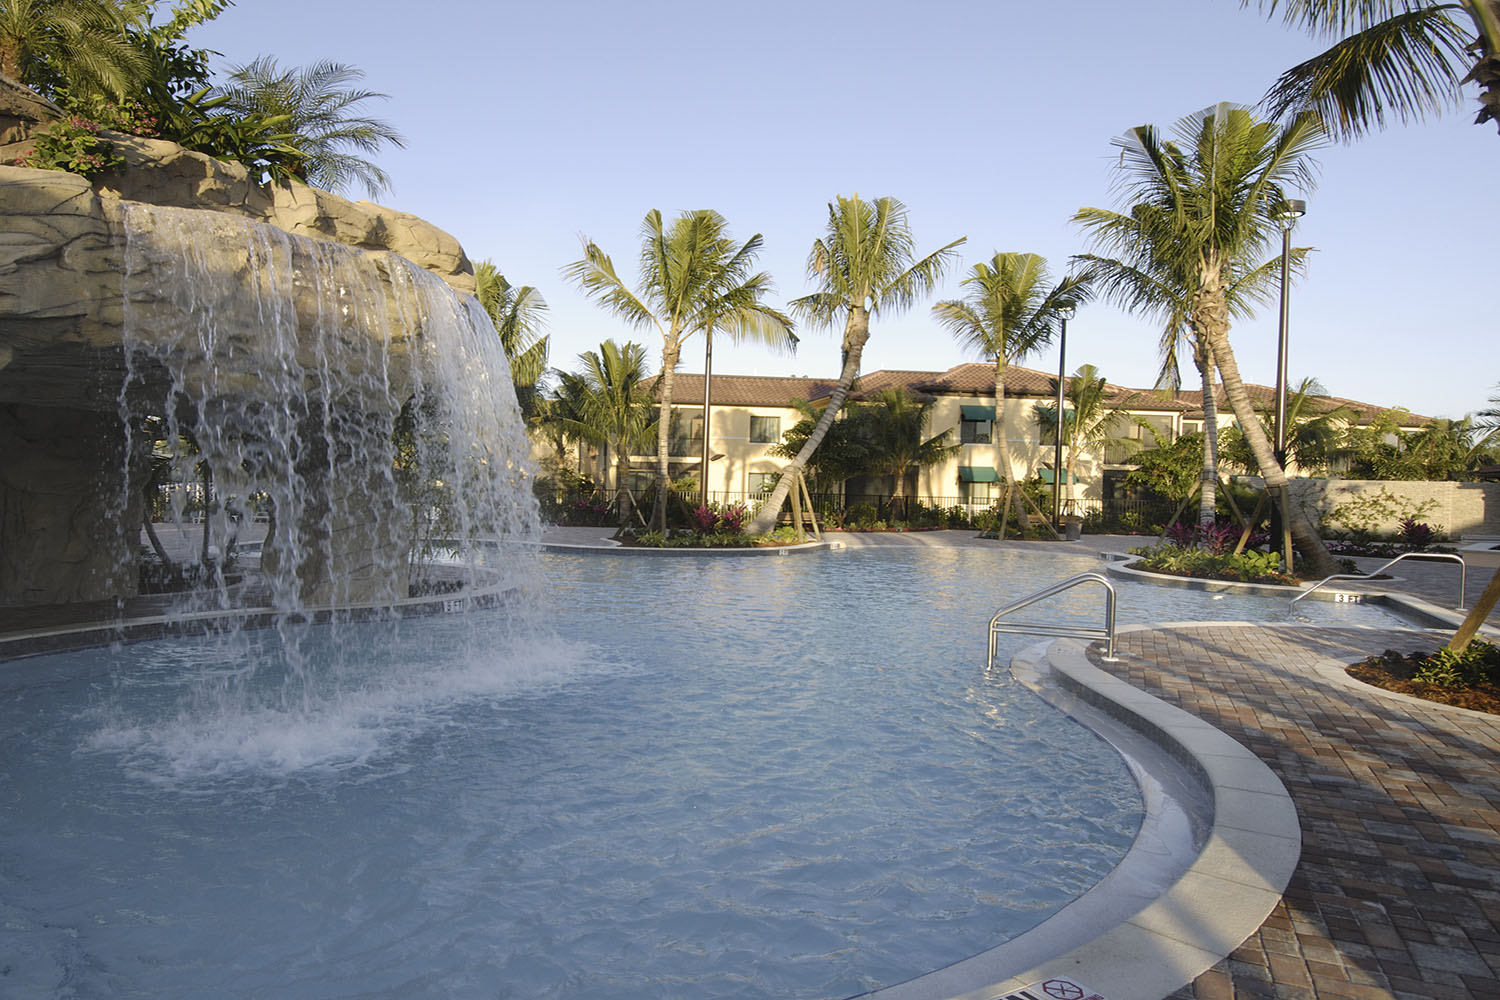 Naples Bay Resort Review